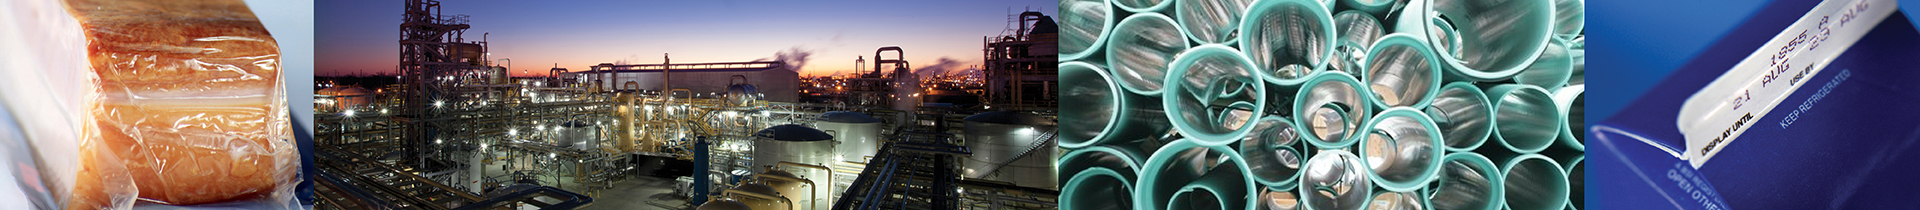 Westlake Chemical to Expand Ethylene Capacity in Lake Charles, LA in First Quarter 2013